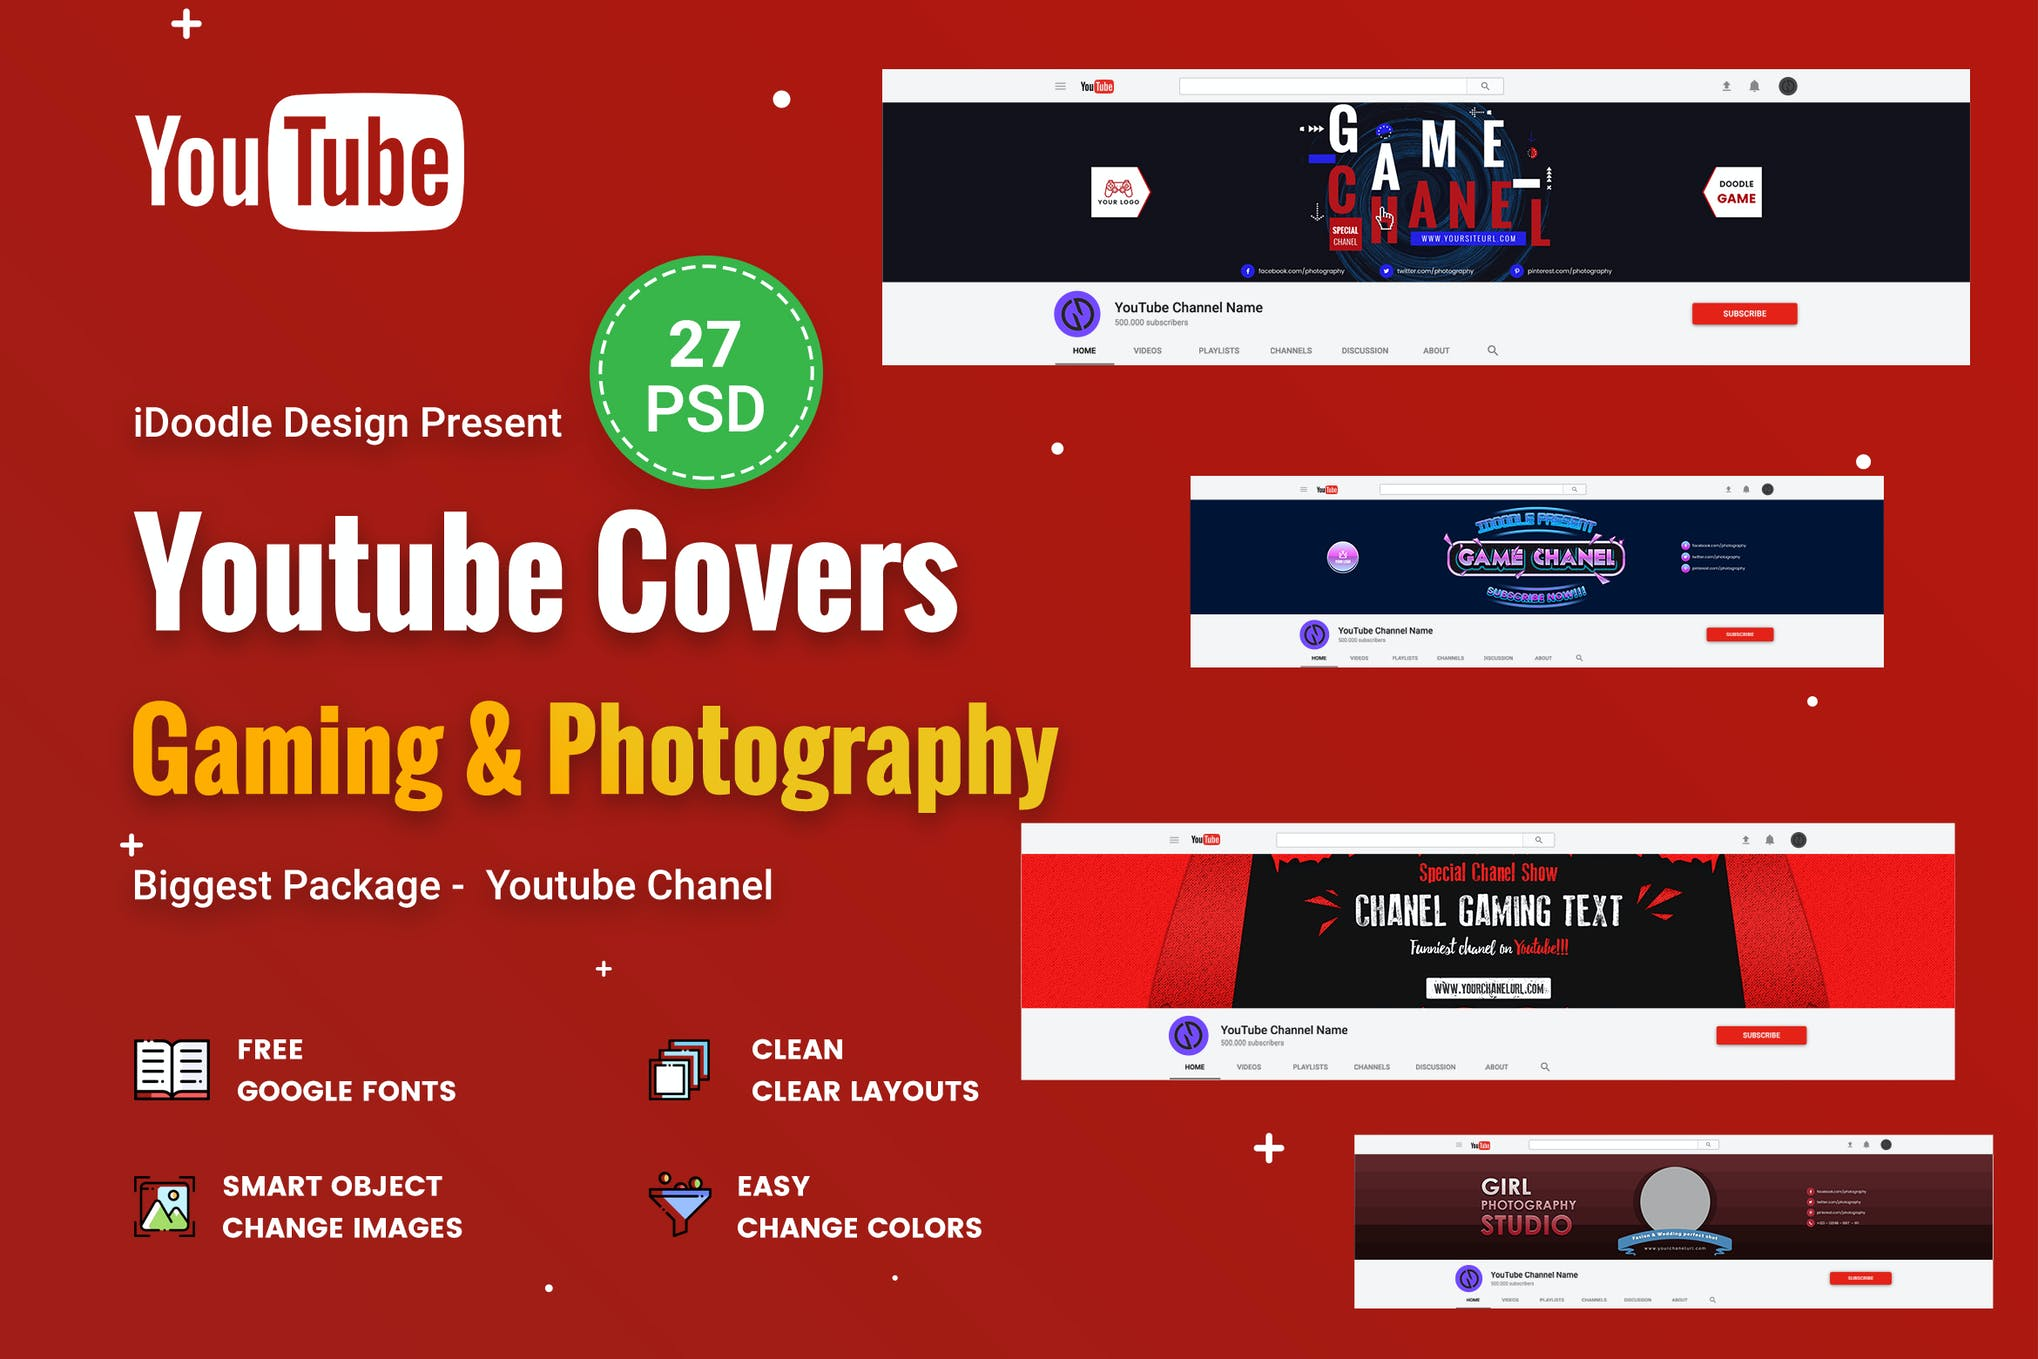 youtube cover psd promotion youtube covers - psdidoodle on envato elements